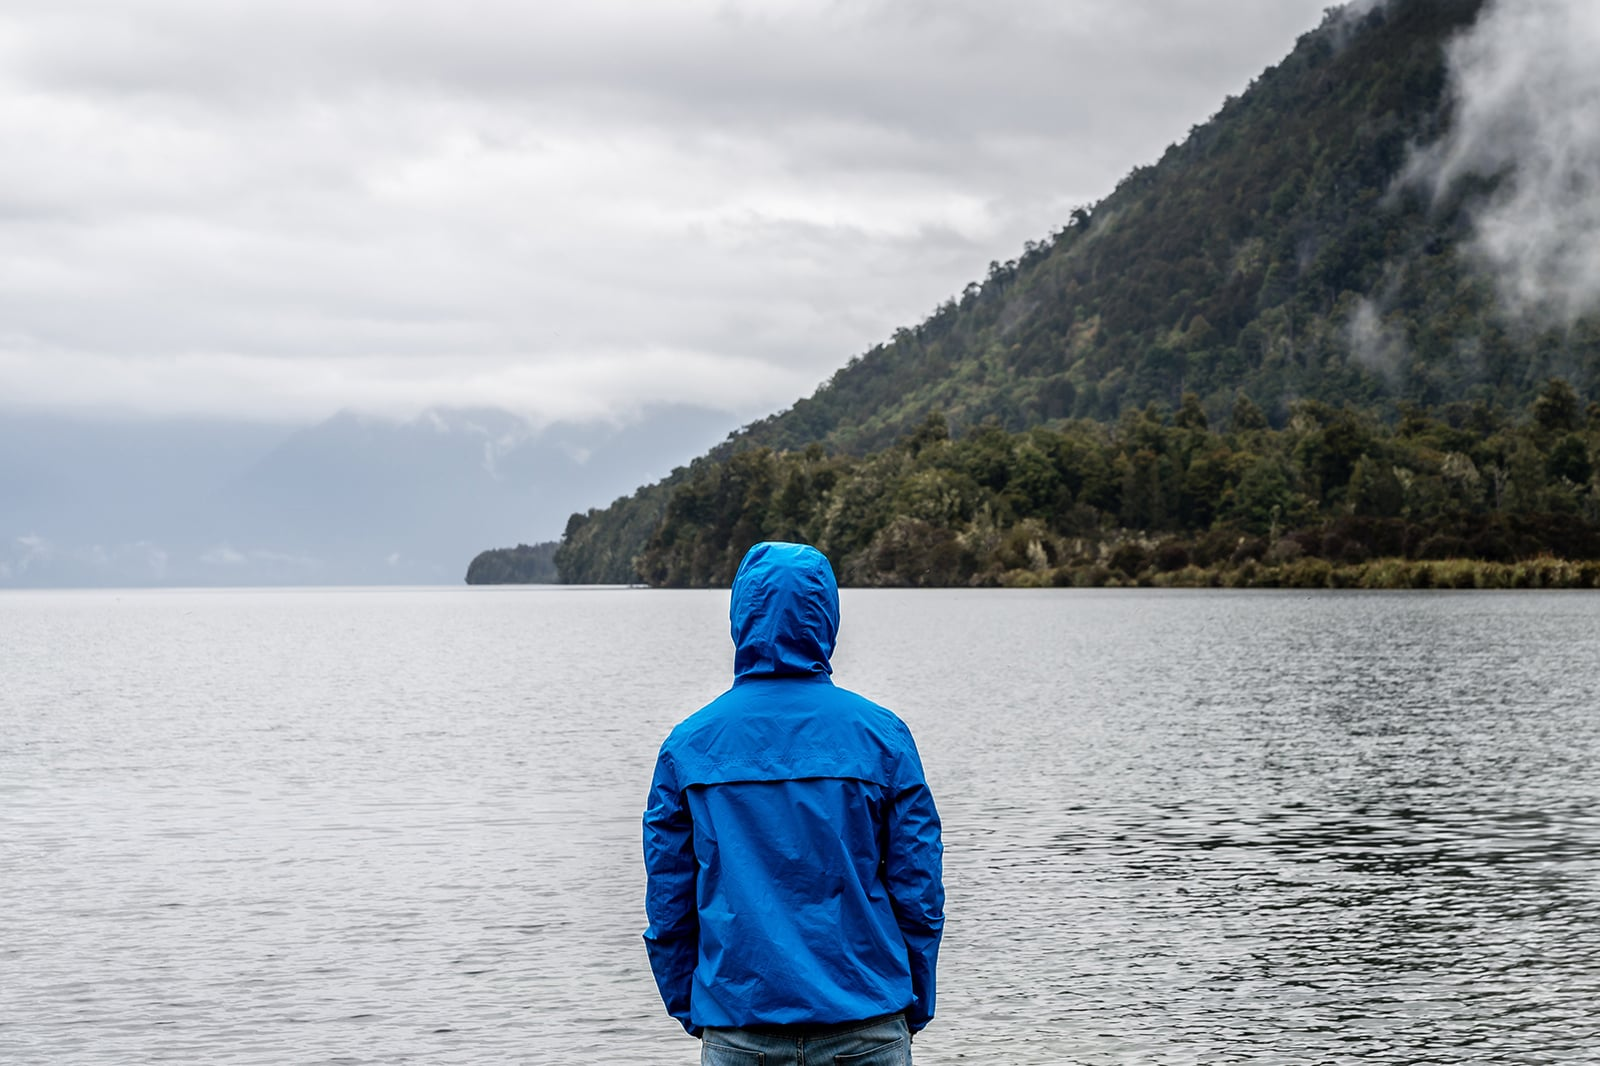 A man wearing a blue rain jacket faces a rainy ocean landscape